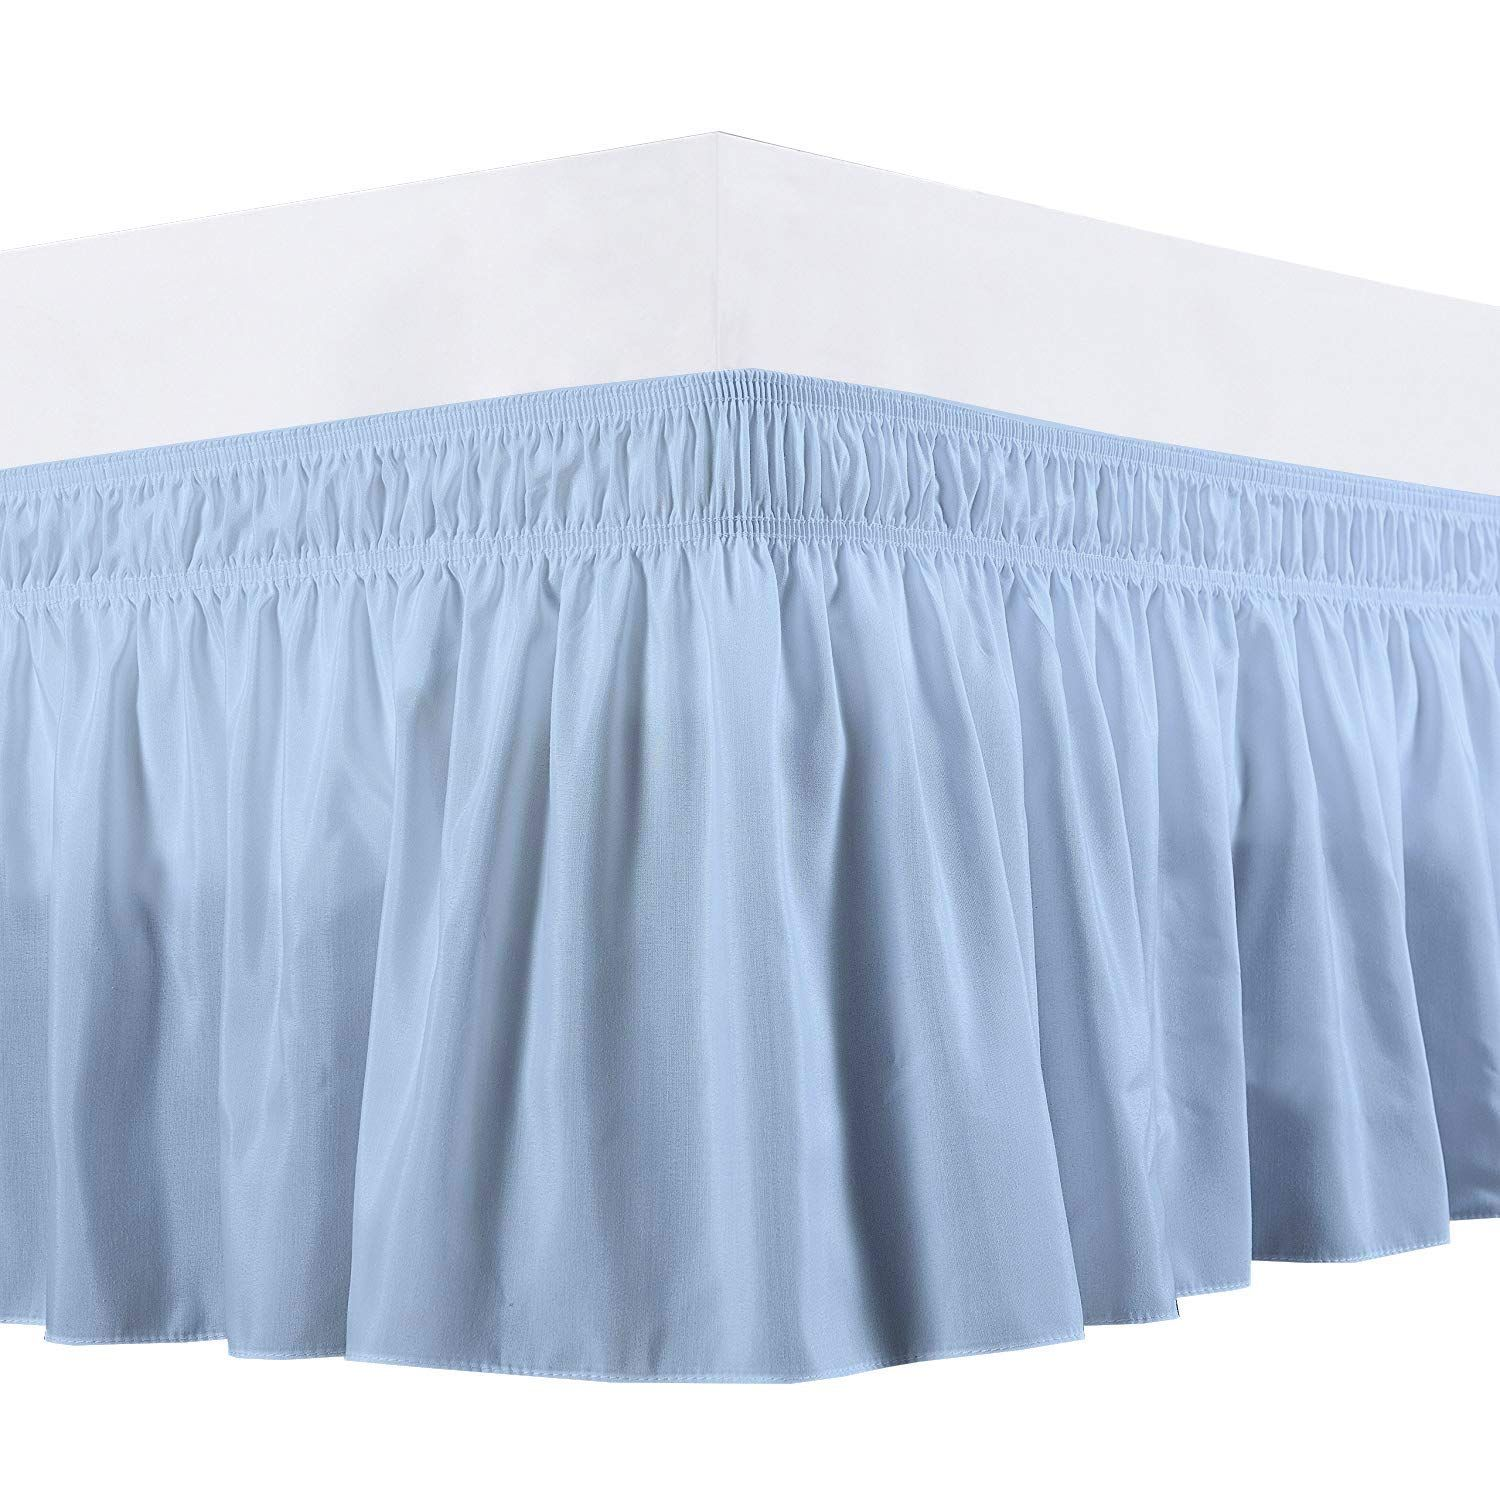 Extra PKT Box Plated Two Tone 1Qty BedSkirt Cotton 1000TC Plain White-Navy Blue